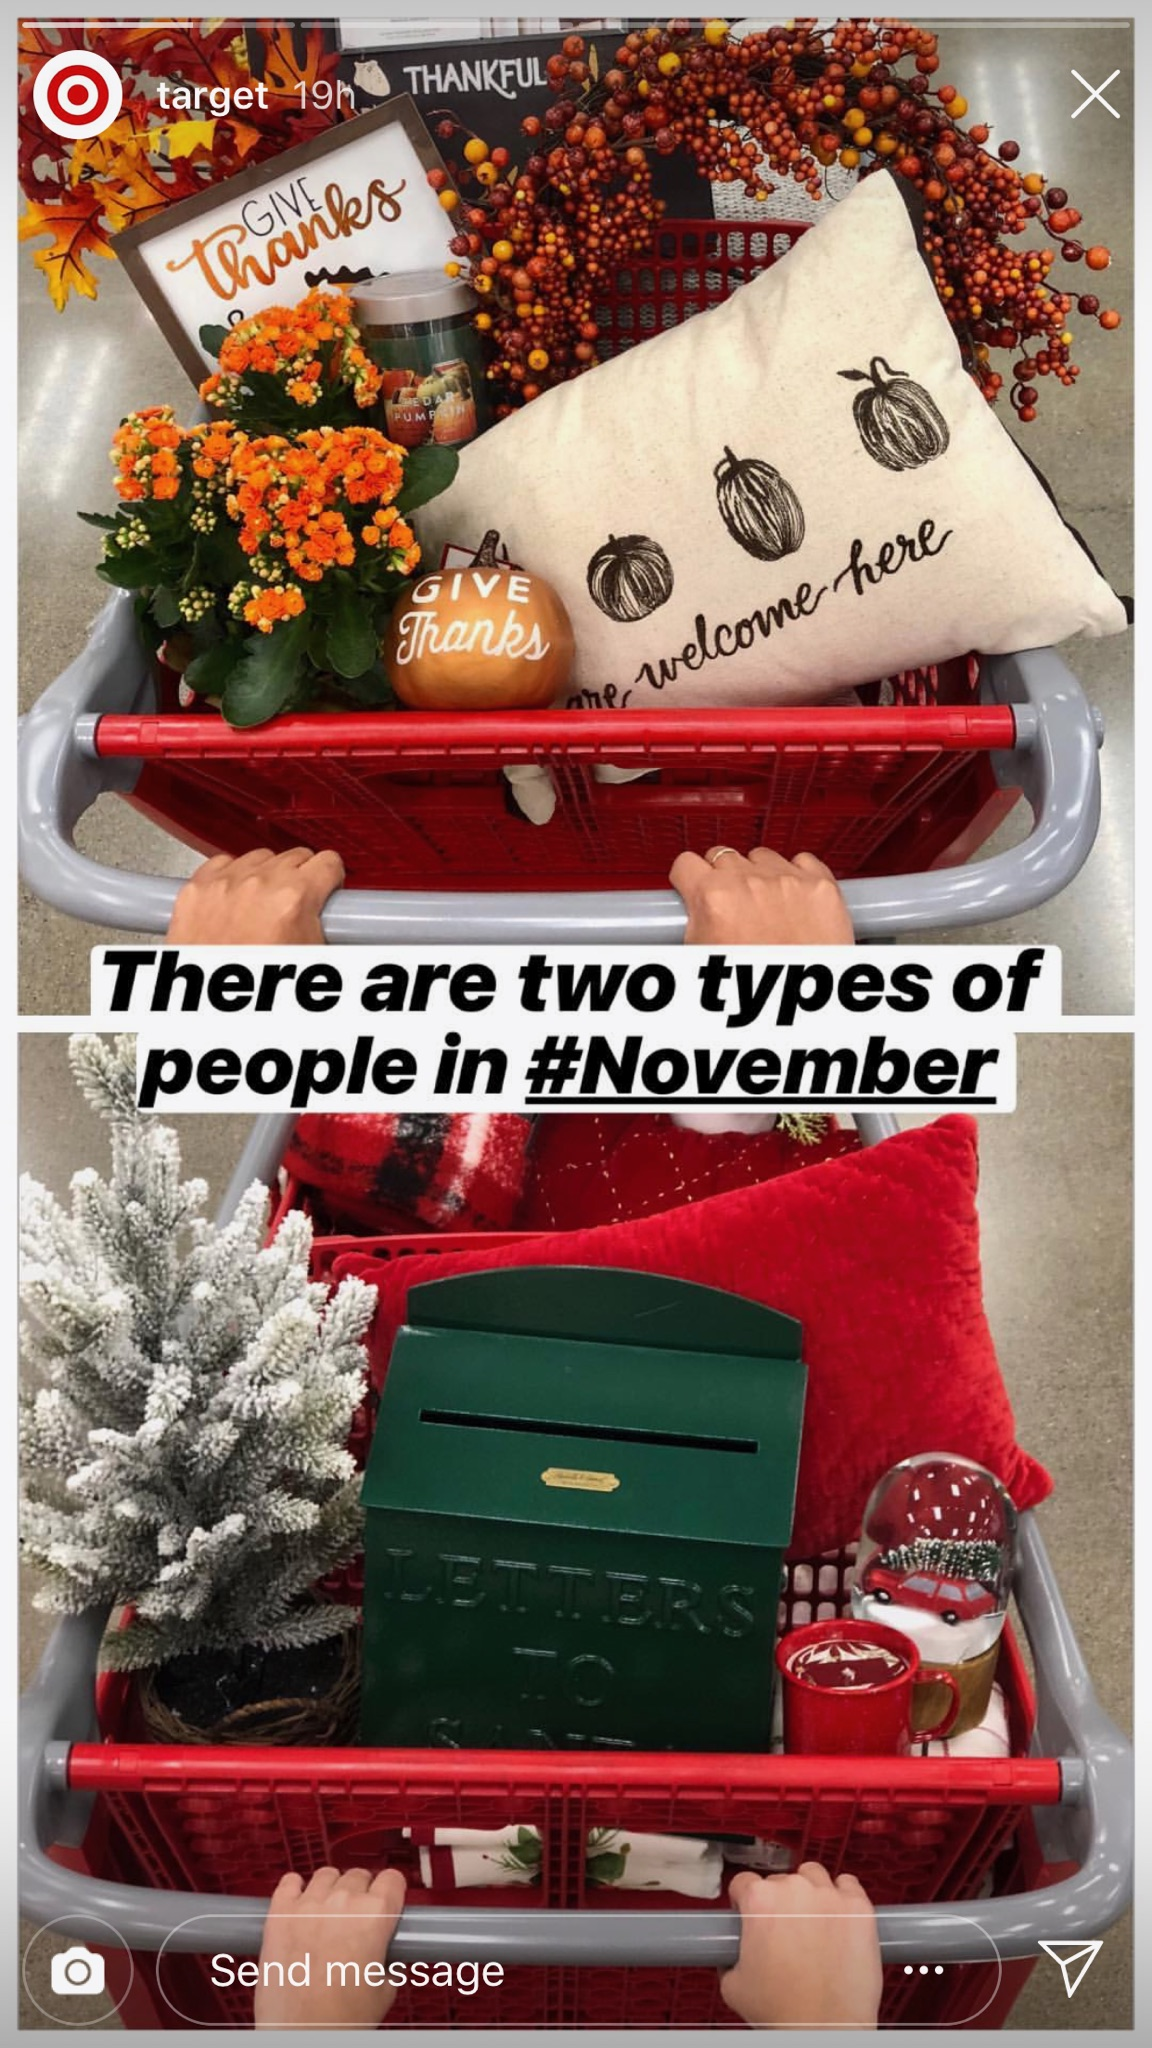 Holiday Instagram story from Target